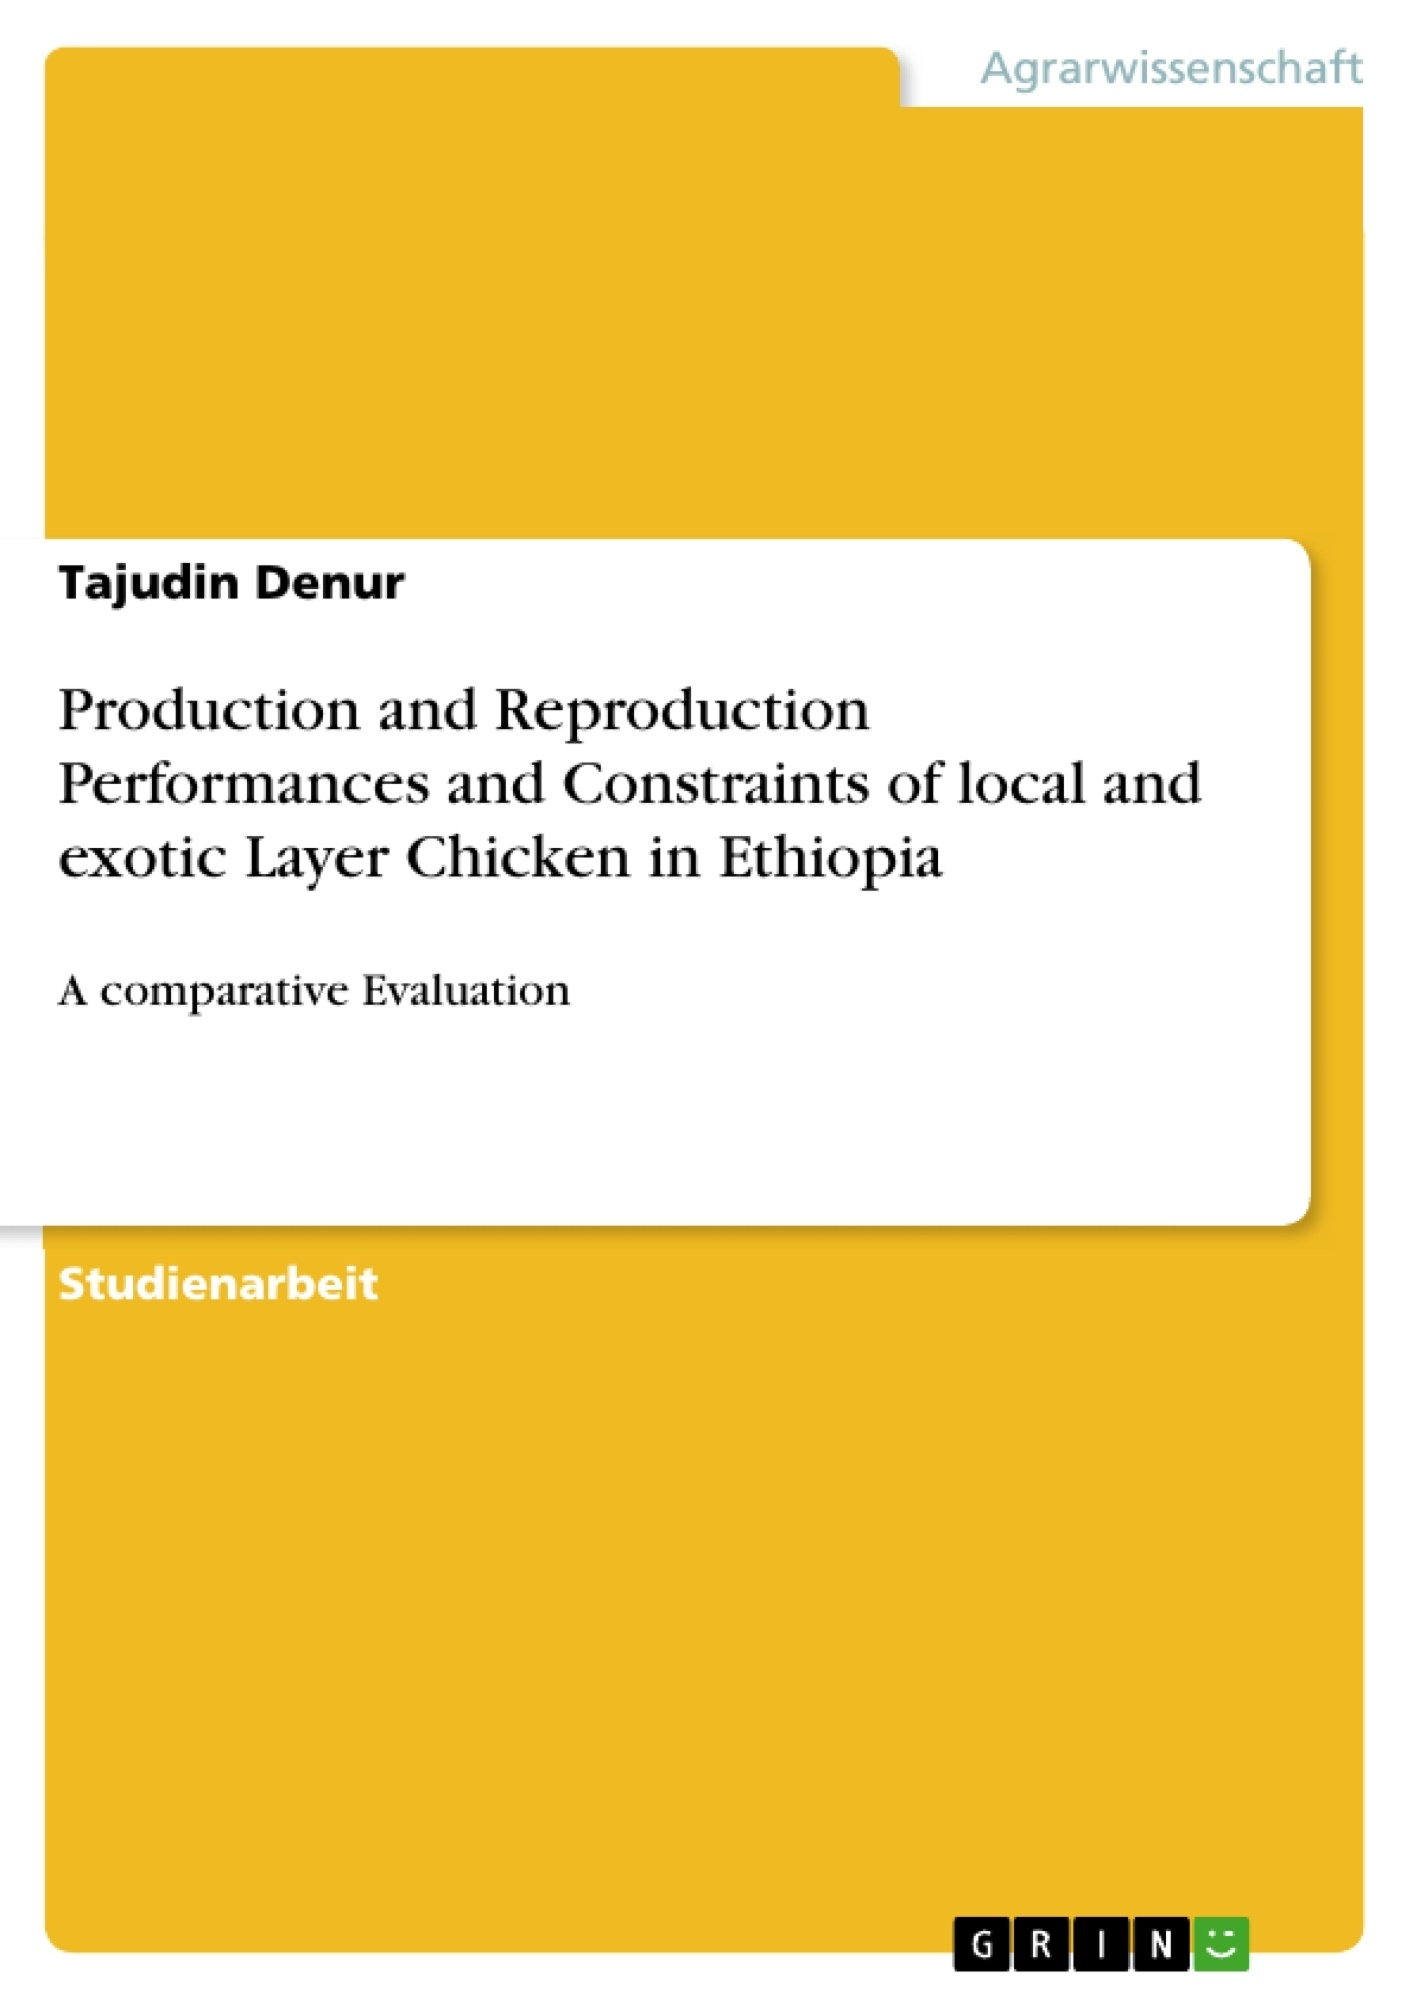 Titel: Production and Reproduction Performances and Constraints of local and exotic Layer Chicken in Ethiopia